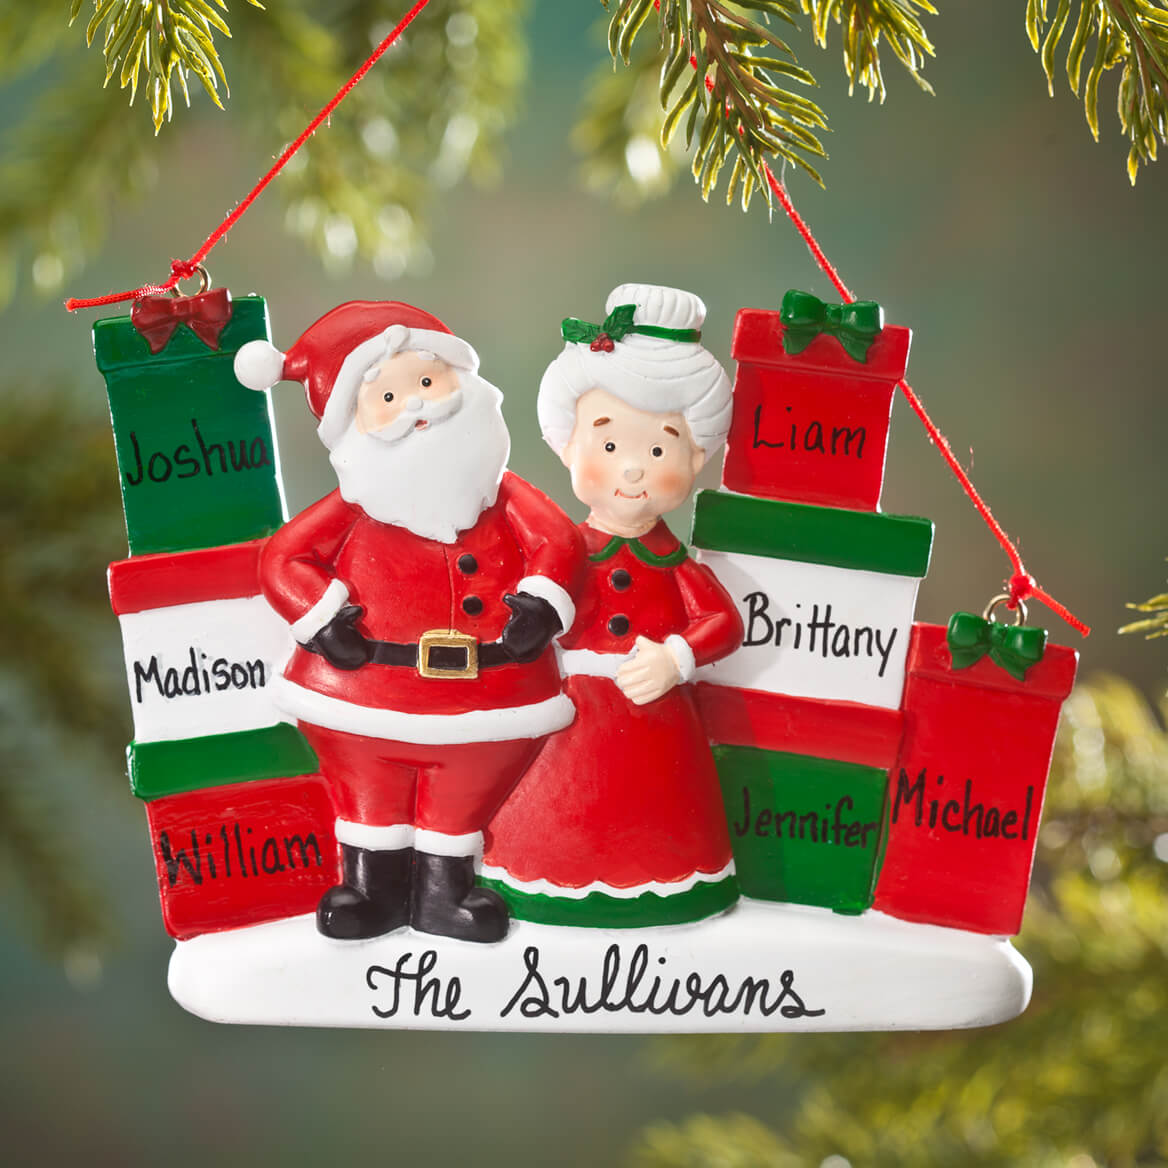 Personalized Mr. and Mrs. Claus with Presents Ornament-353257